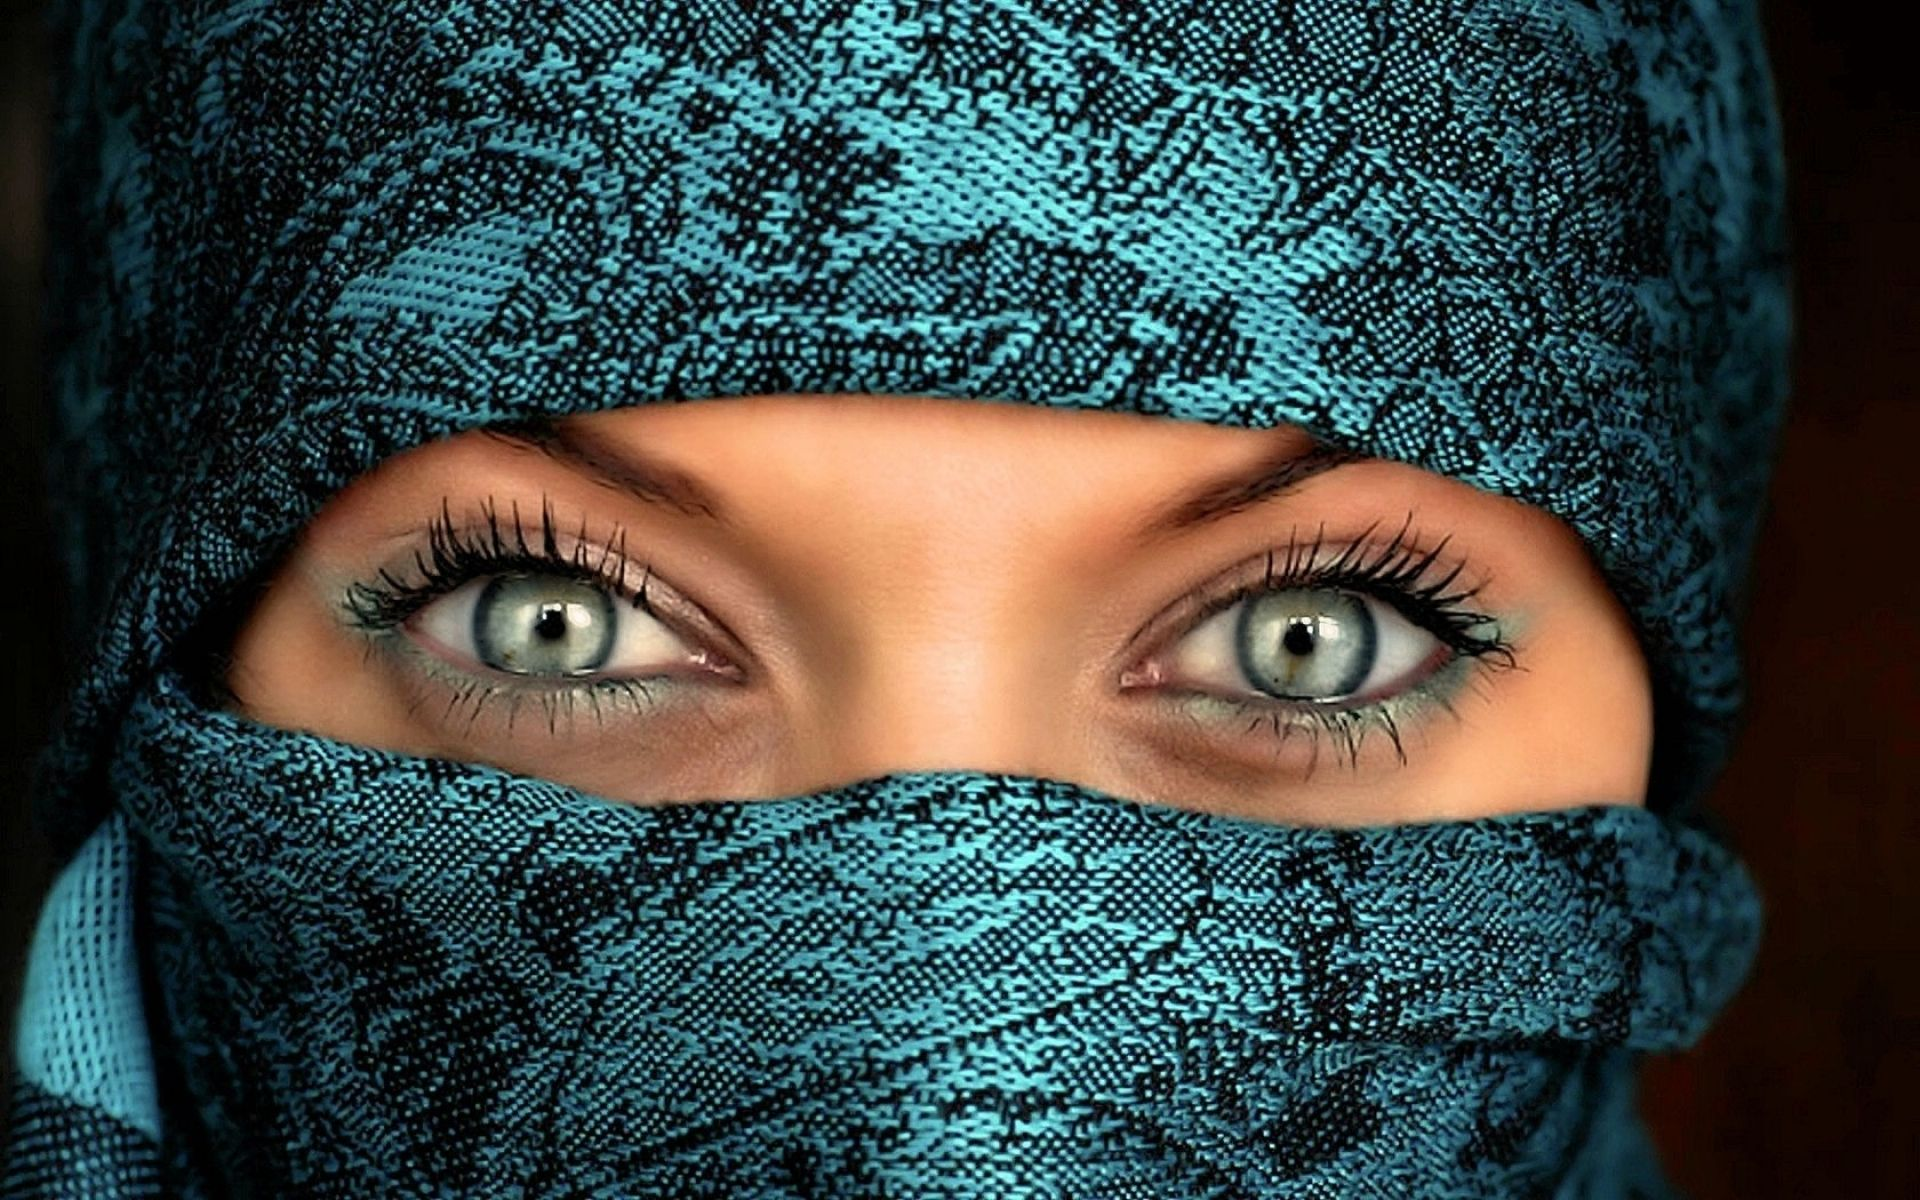 portrayal women arabian nights Teaching the arabian nights in wisconsin a resource guide by sofia samatar a note of caution on plagiarism as with other great texts, there is a wealth of information readily available on the arabian.